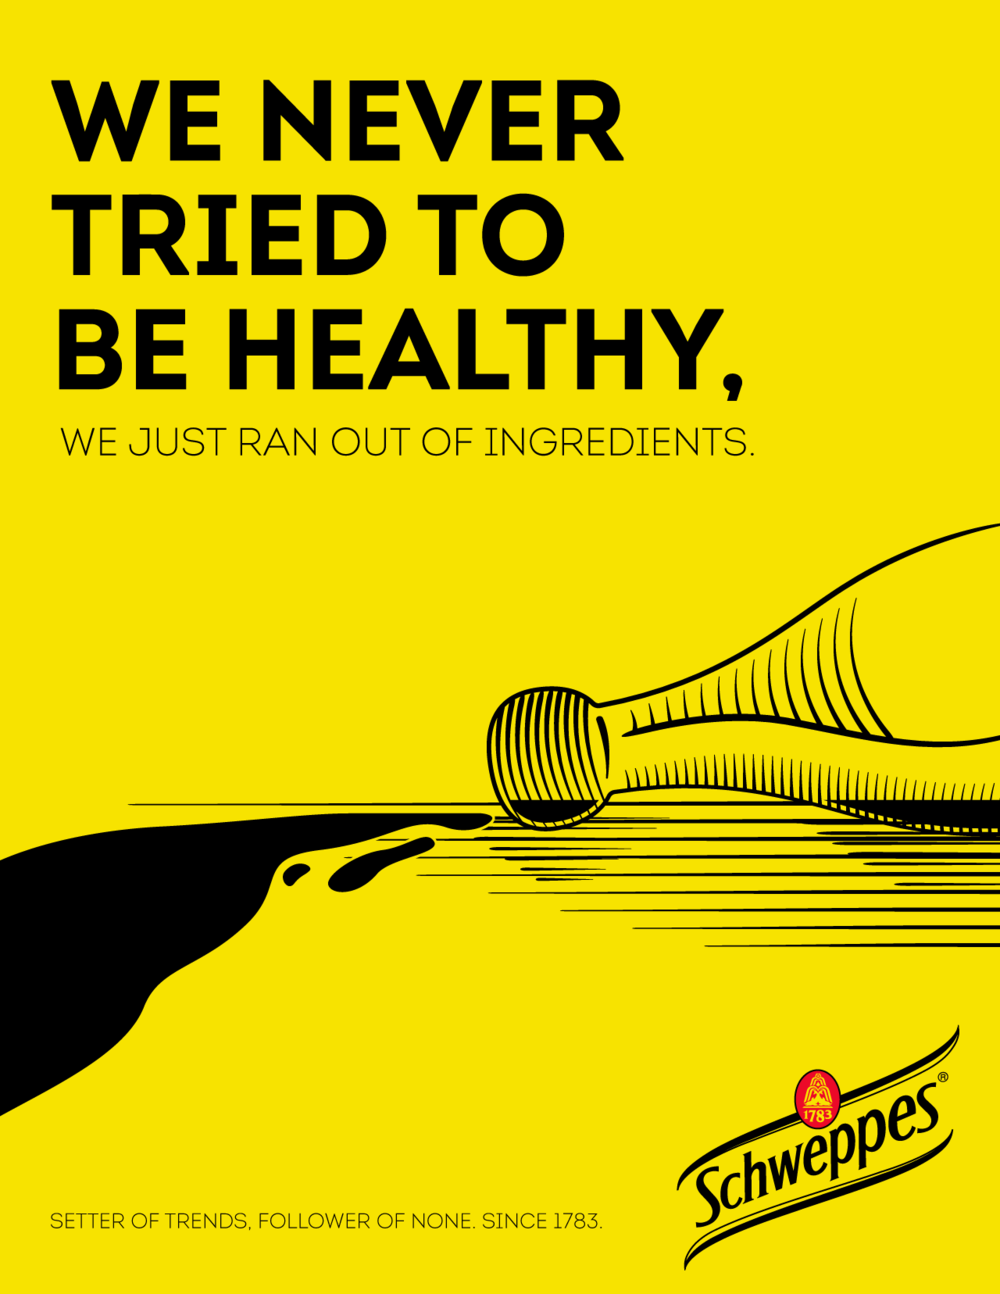 schweppes-ingredients new.png